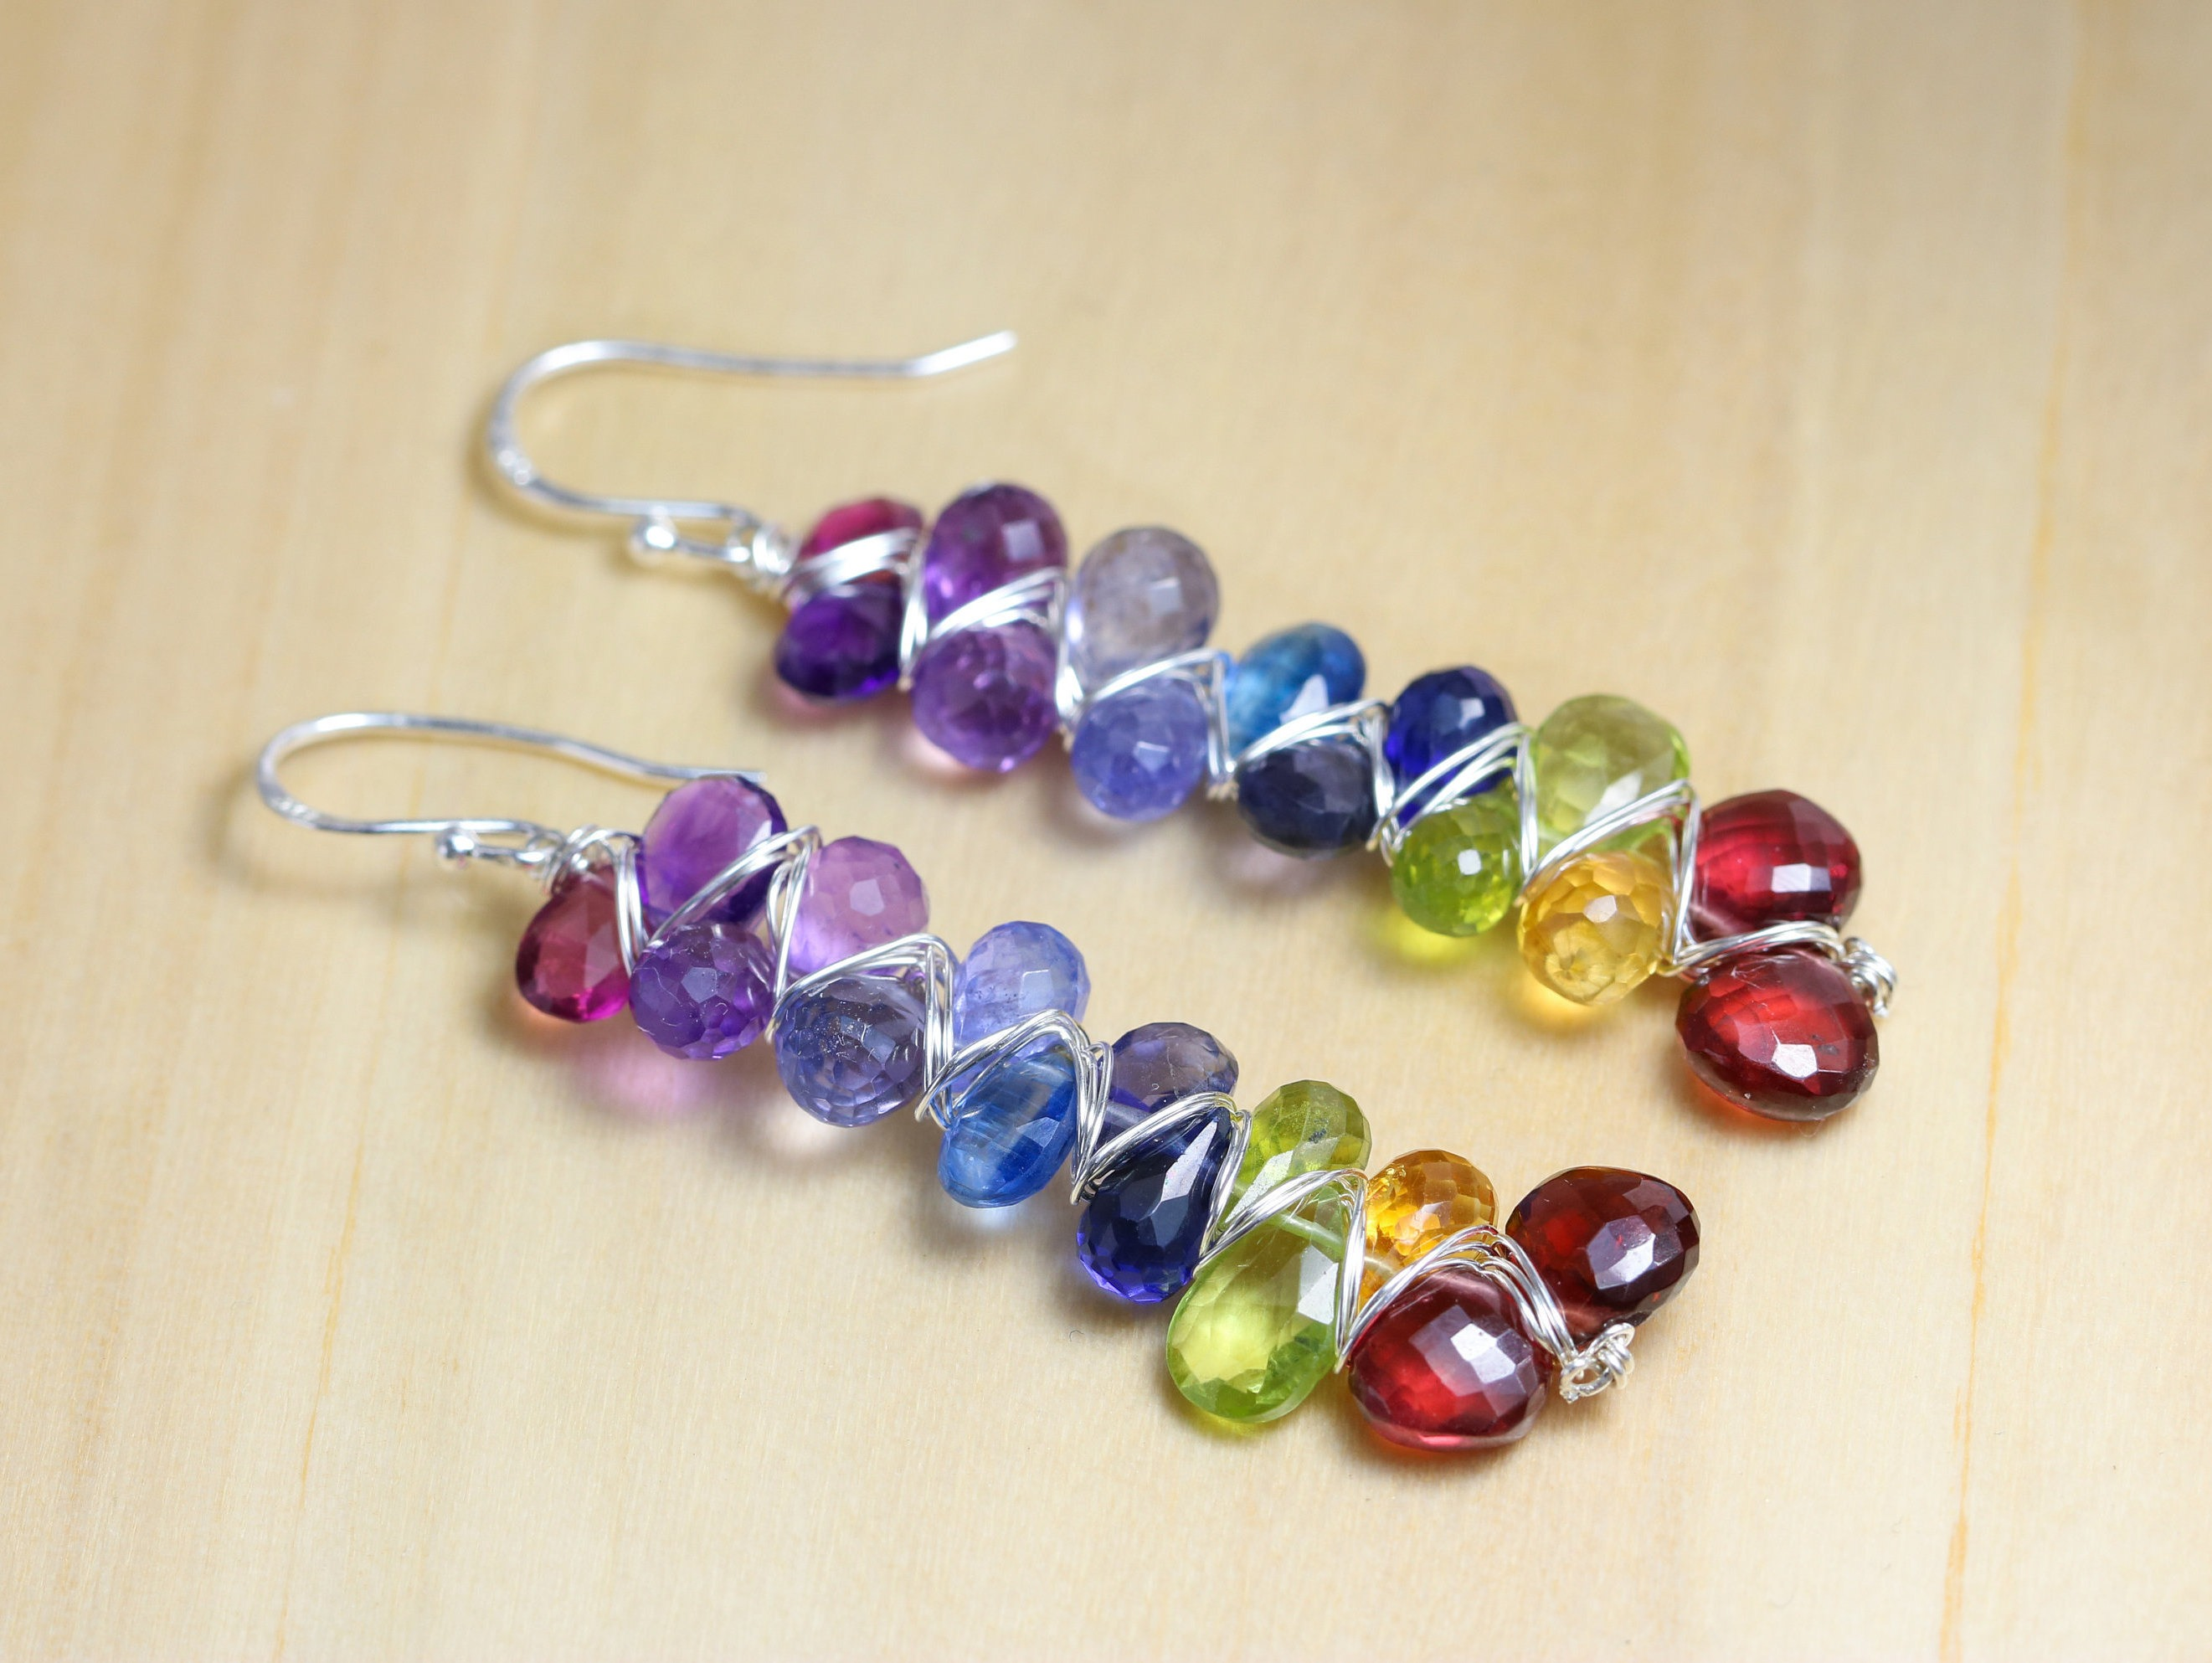 sapphire crystals statement design statemnet natural the multi rainbow crustals rock earrings with dangle sapphires